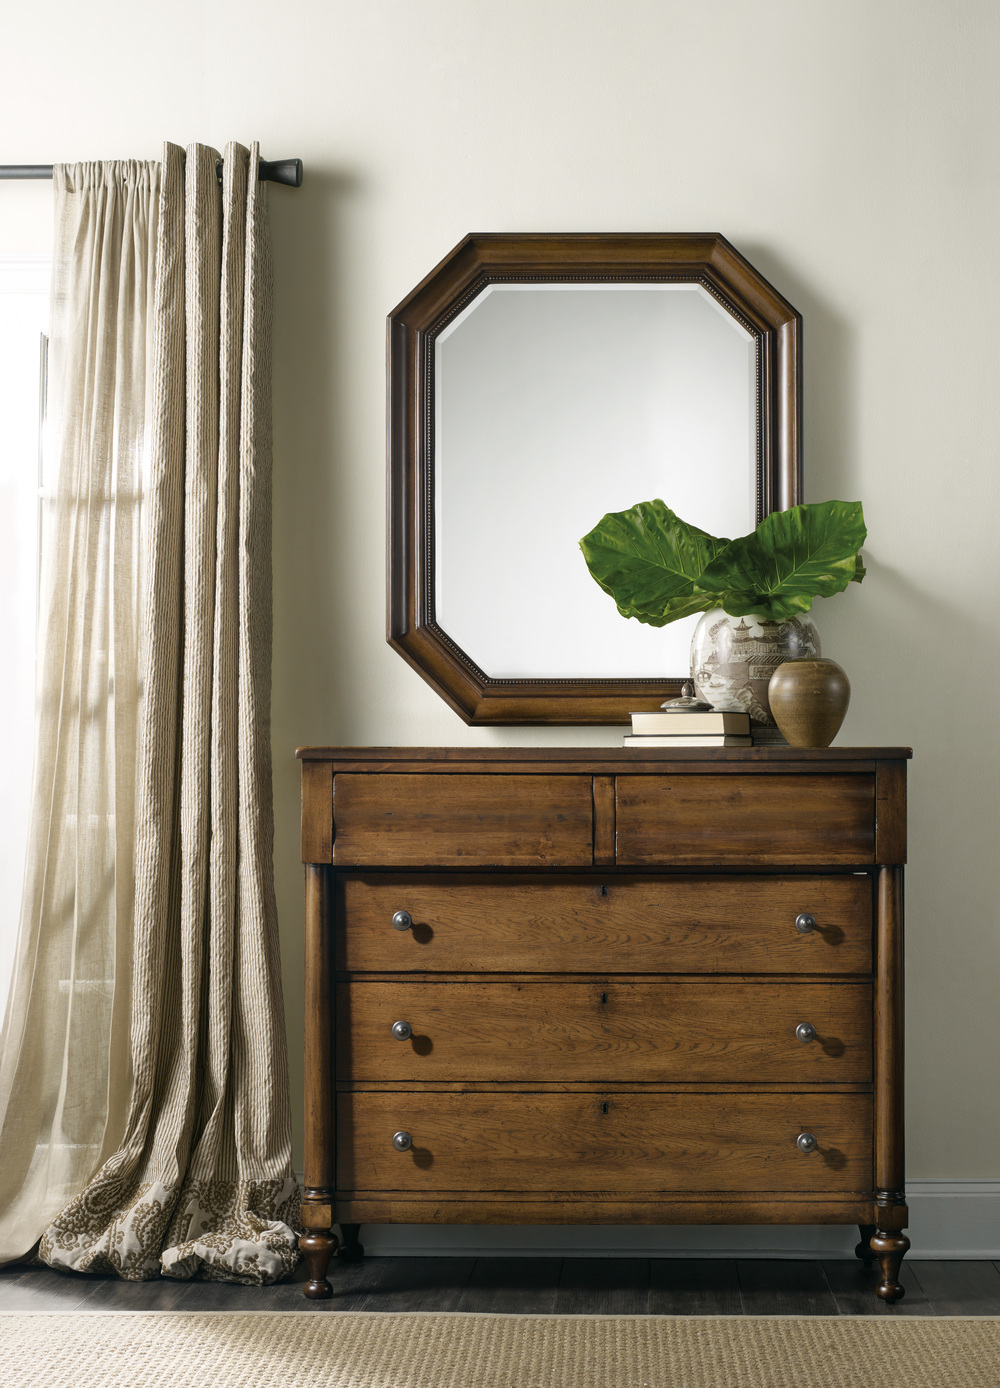 Hooker Furniture - Archivist Portrait Mirror